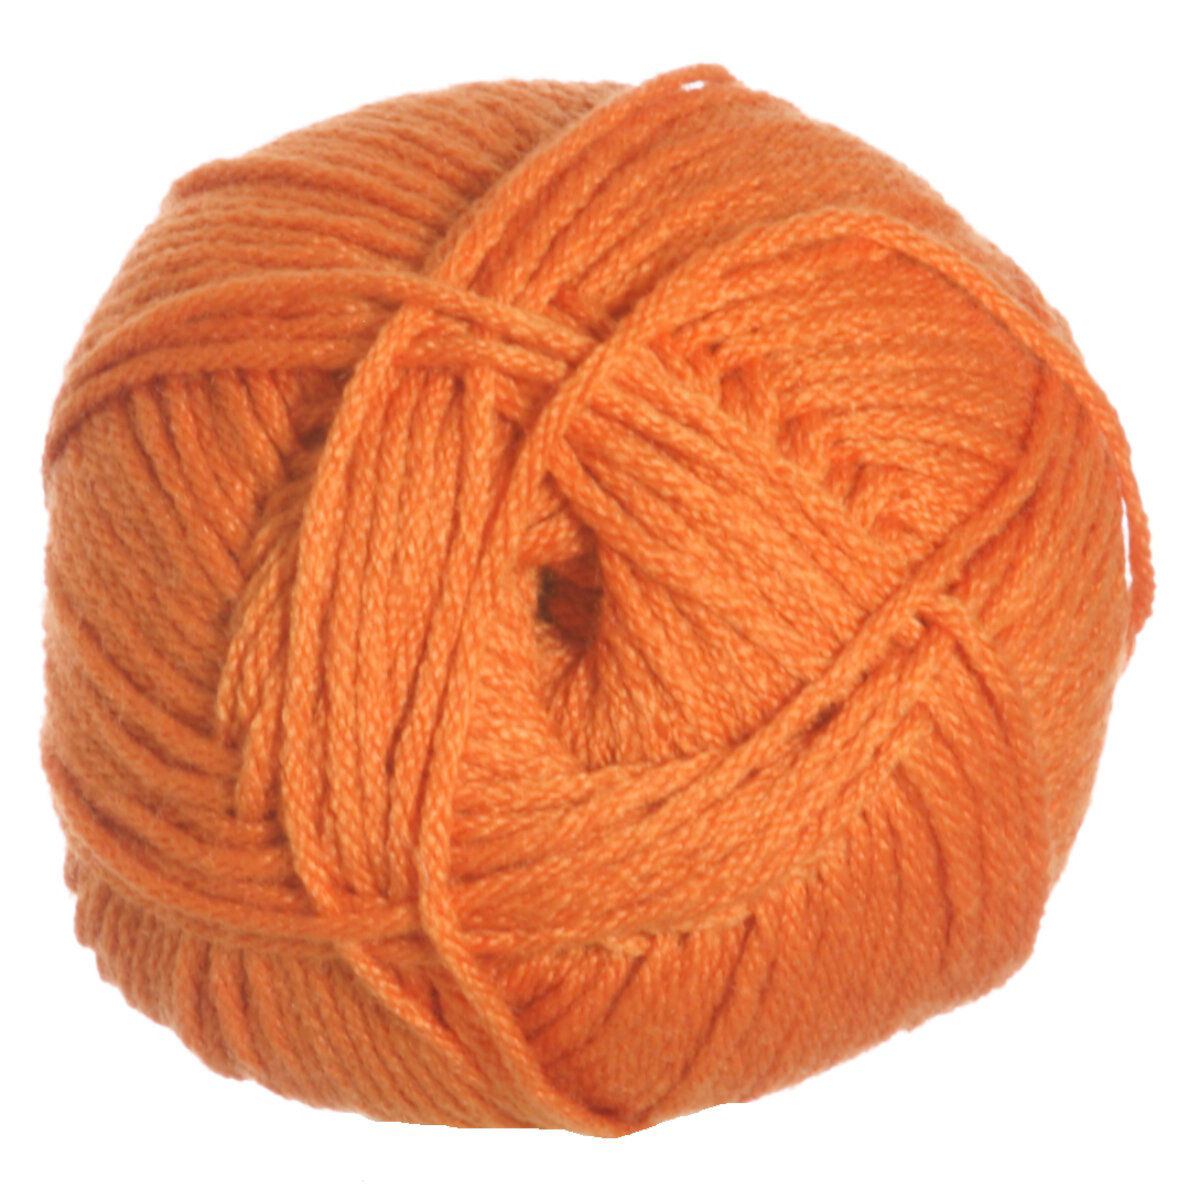 Comfort Zone Knitting Needles : Berroco comfort dk yarn kidz orange at jimmy beans wool